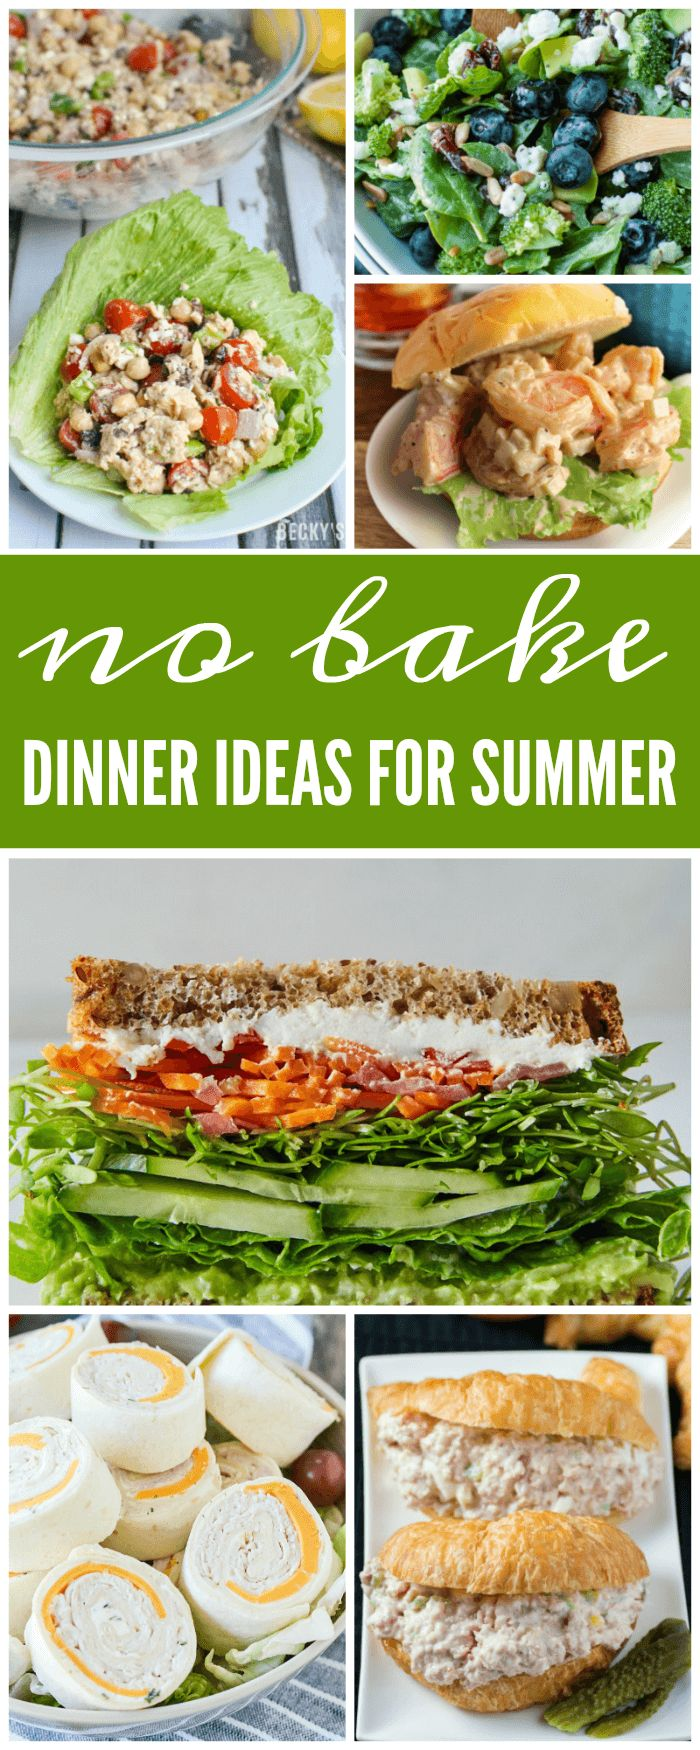 No Bake Dinner Ideas for Summer perfect backyard barbecue recipes you can make without an oven. All of these Easy No Cook Dinner Recipes require zero cooking.